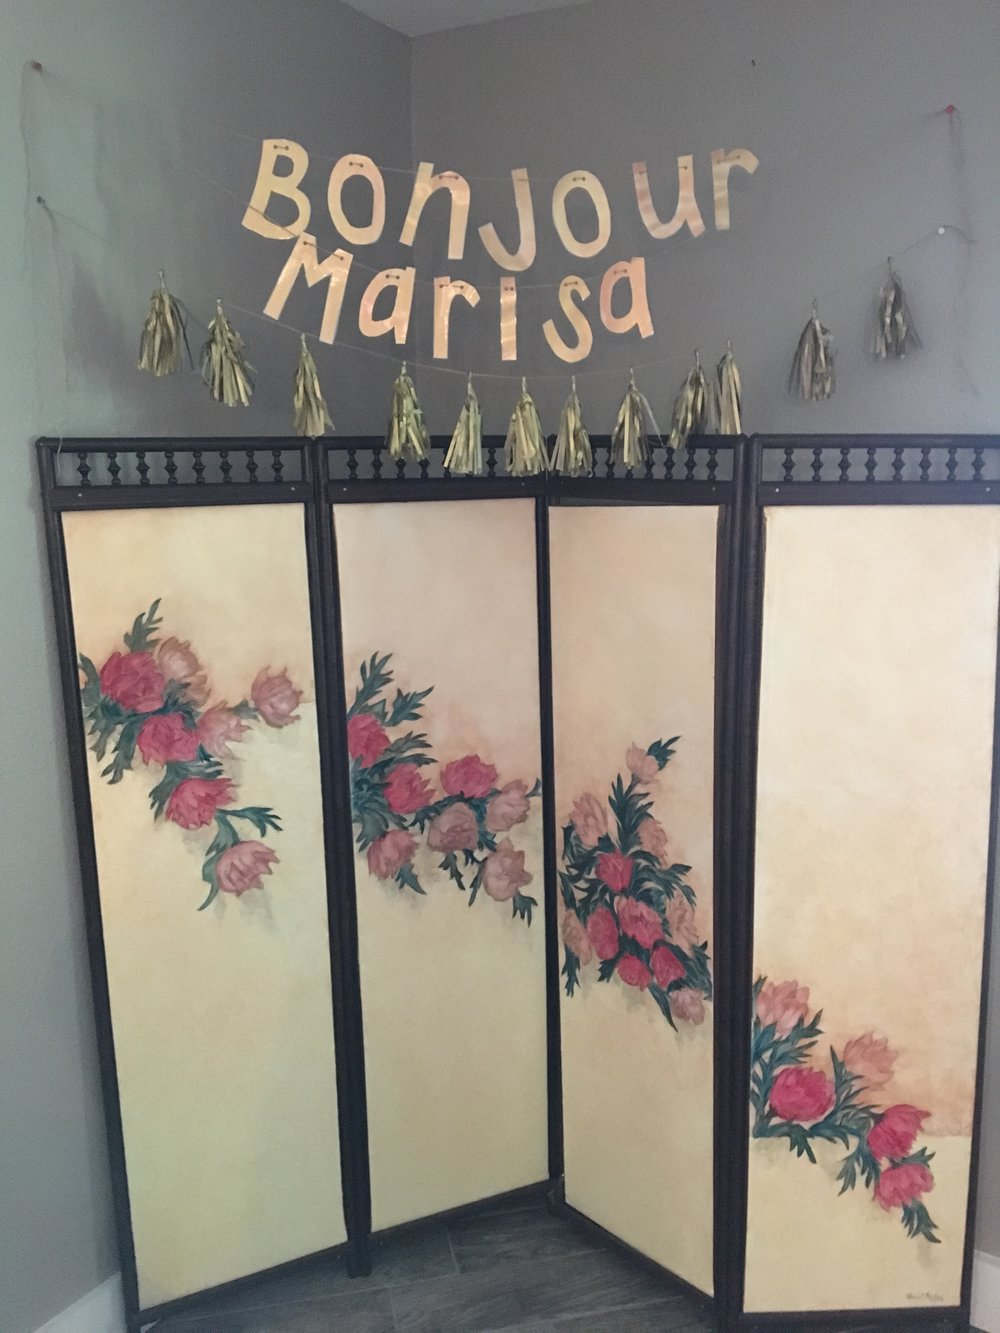 Serving as a photo booth backdrop, this beautiful room divider was hand painted by TJ's grandmother. The cute banner really set the mood and now lives in Baby Marisa's nursery!